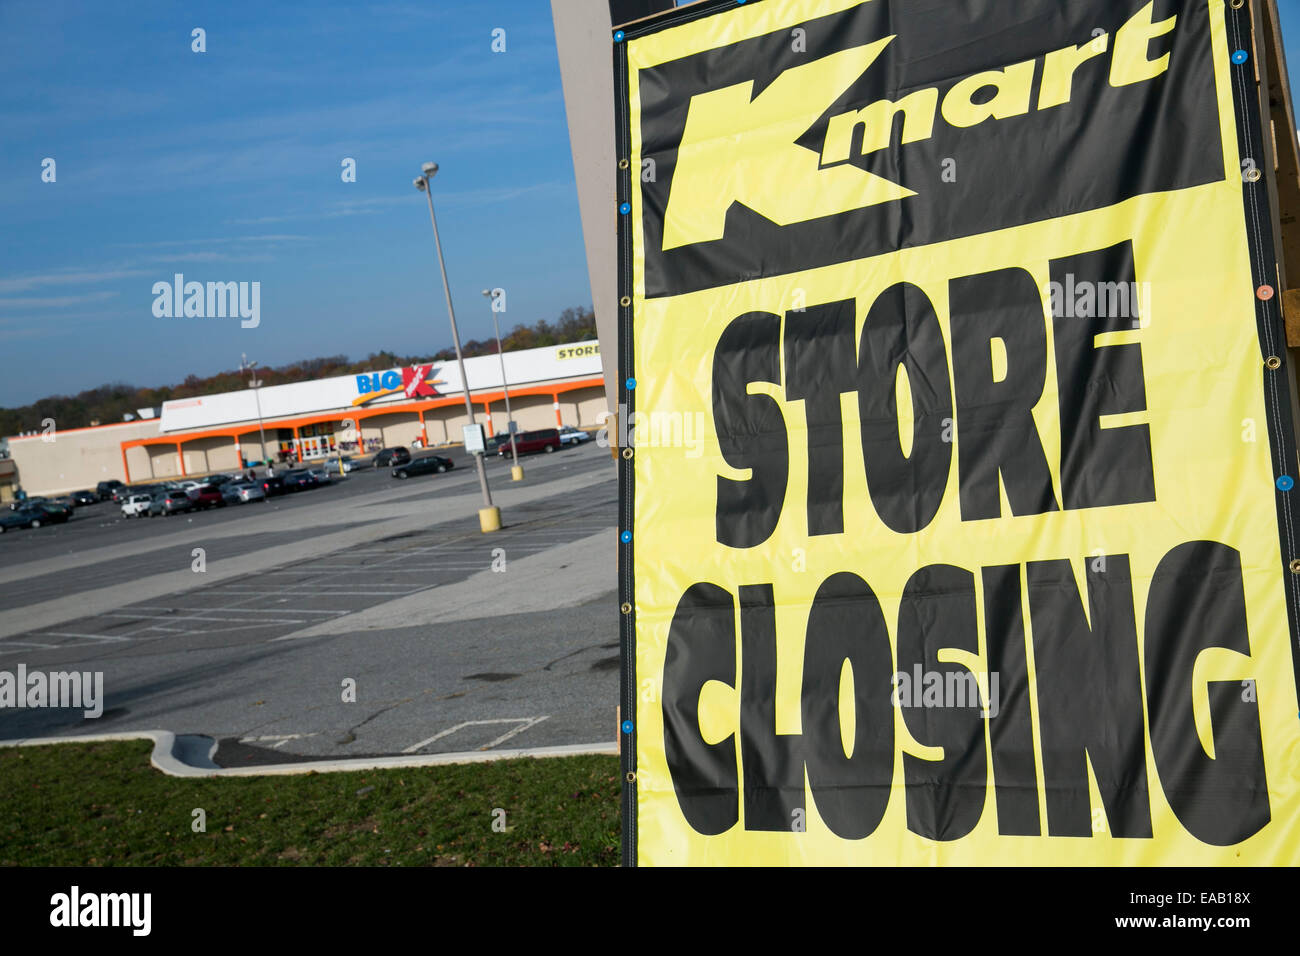 A Kmart retail store with a 'Store Closing Sale' banner in Baltimore, Maryland on November 9, 2014. Sears - Stock Image